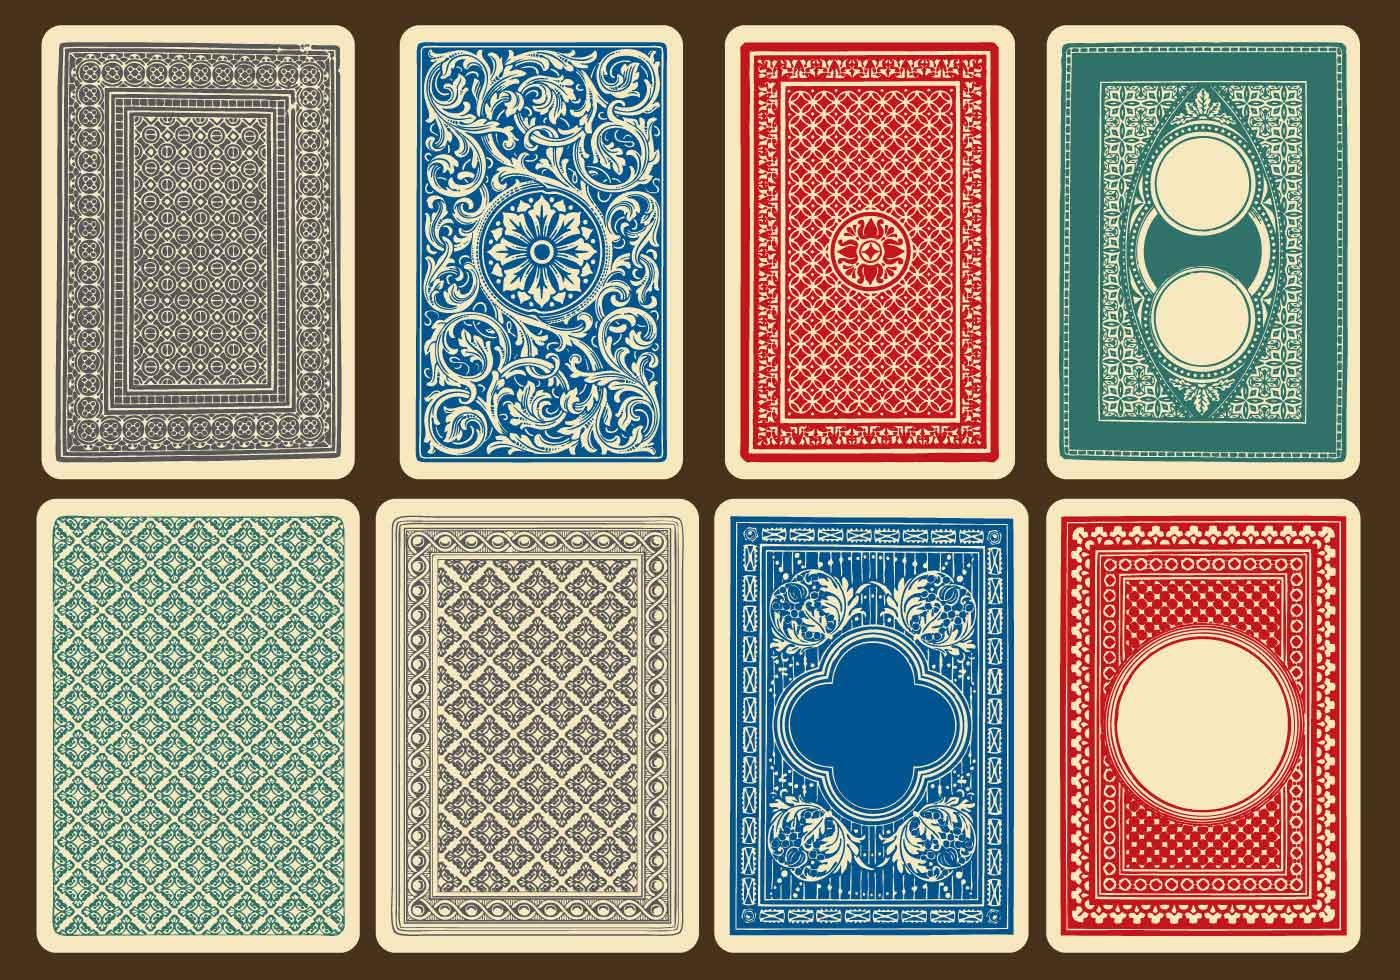 Old Card Back Vectors - Download Free Vector Art, Stock